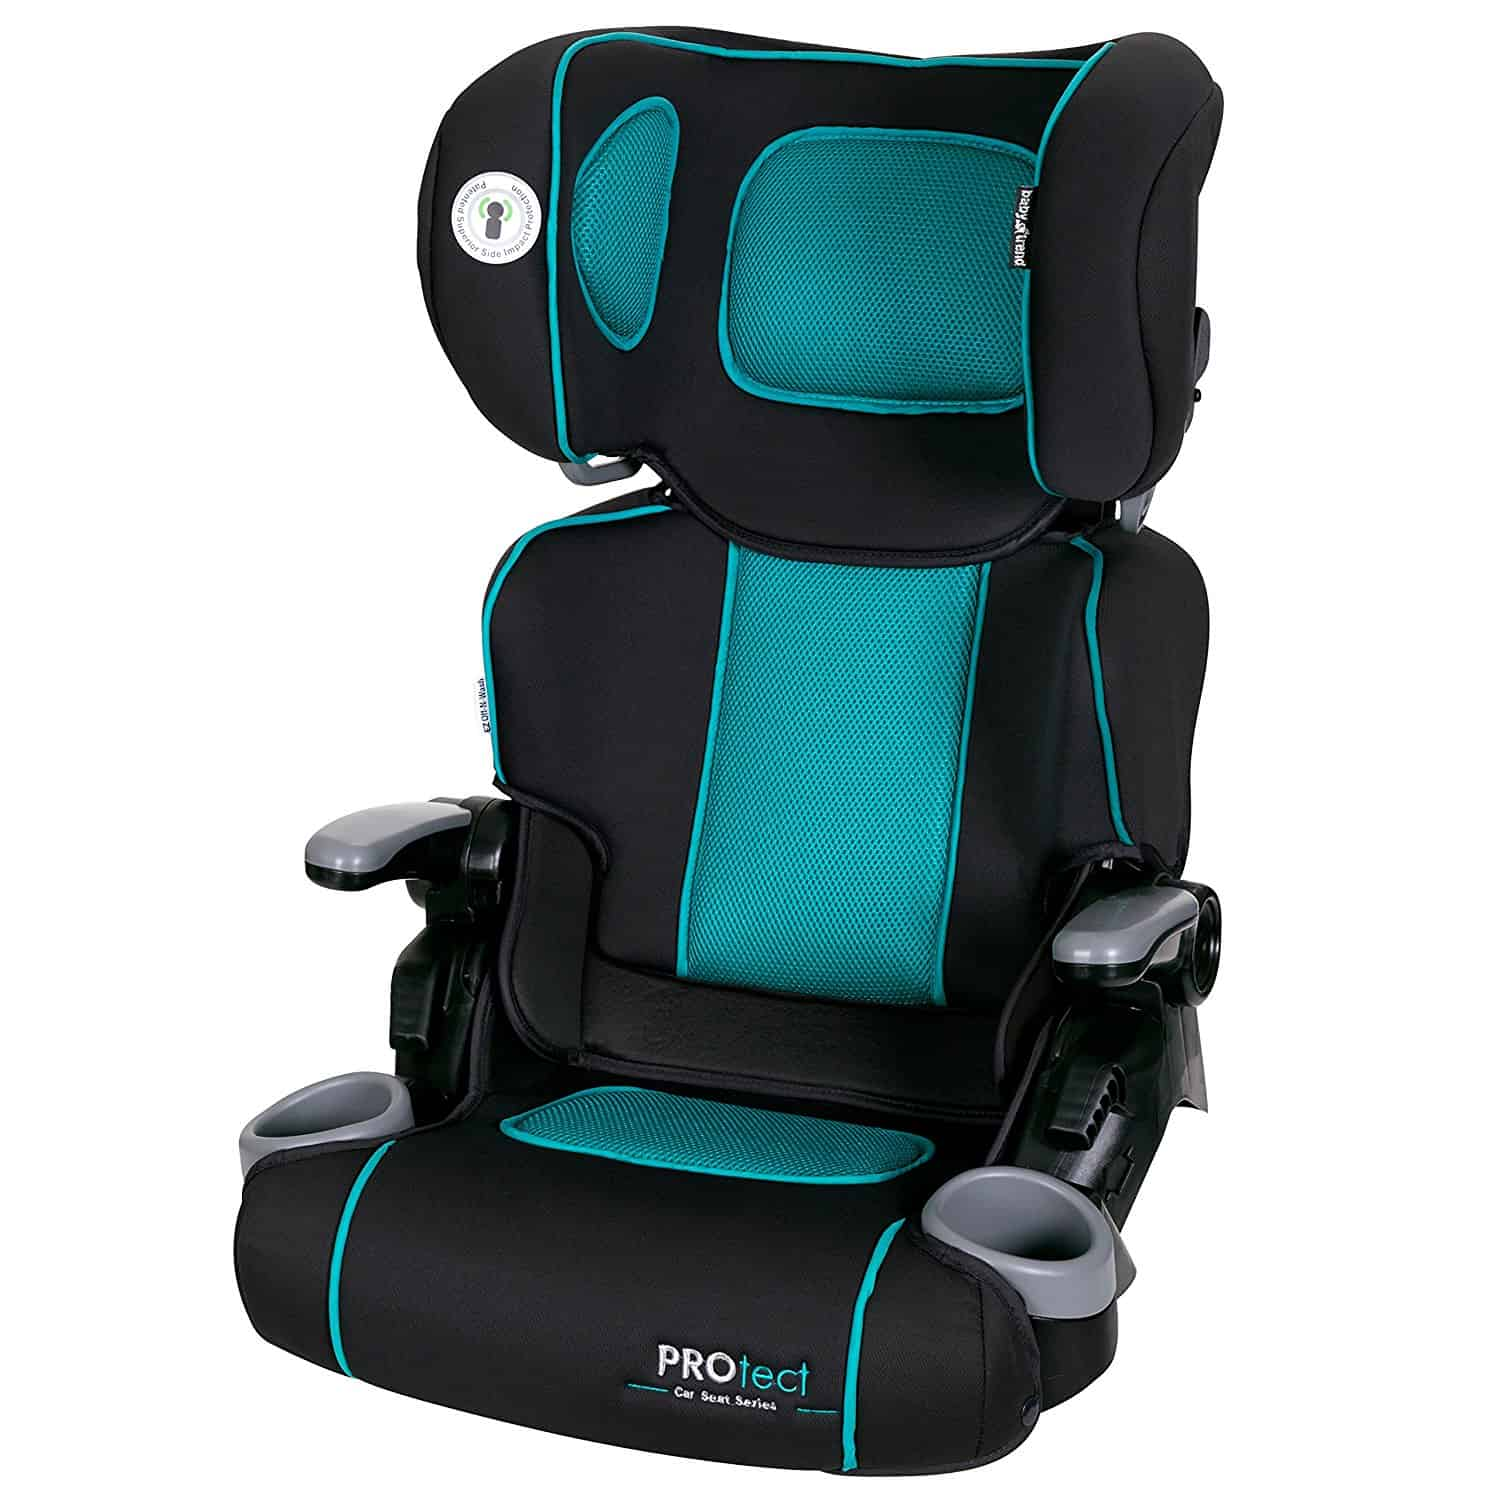 Booster Car Seat review: Baby Trend PROtect Yumi Folding booster